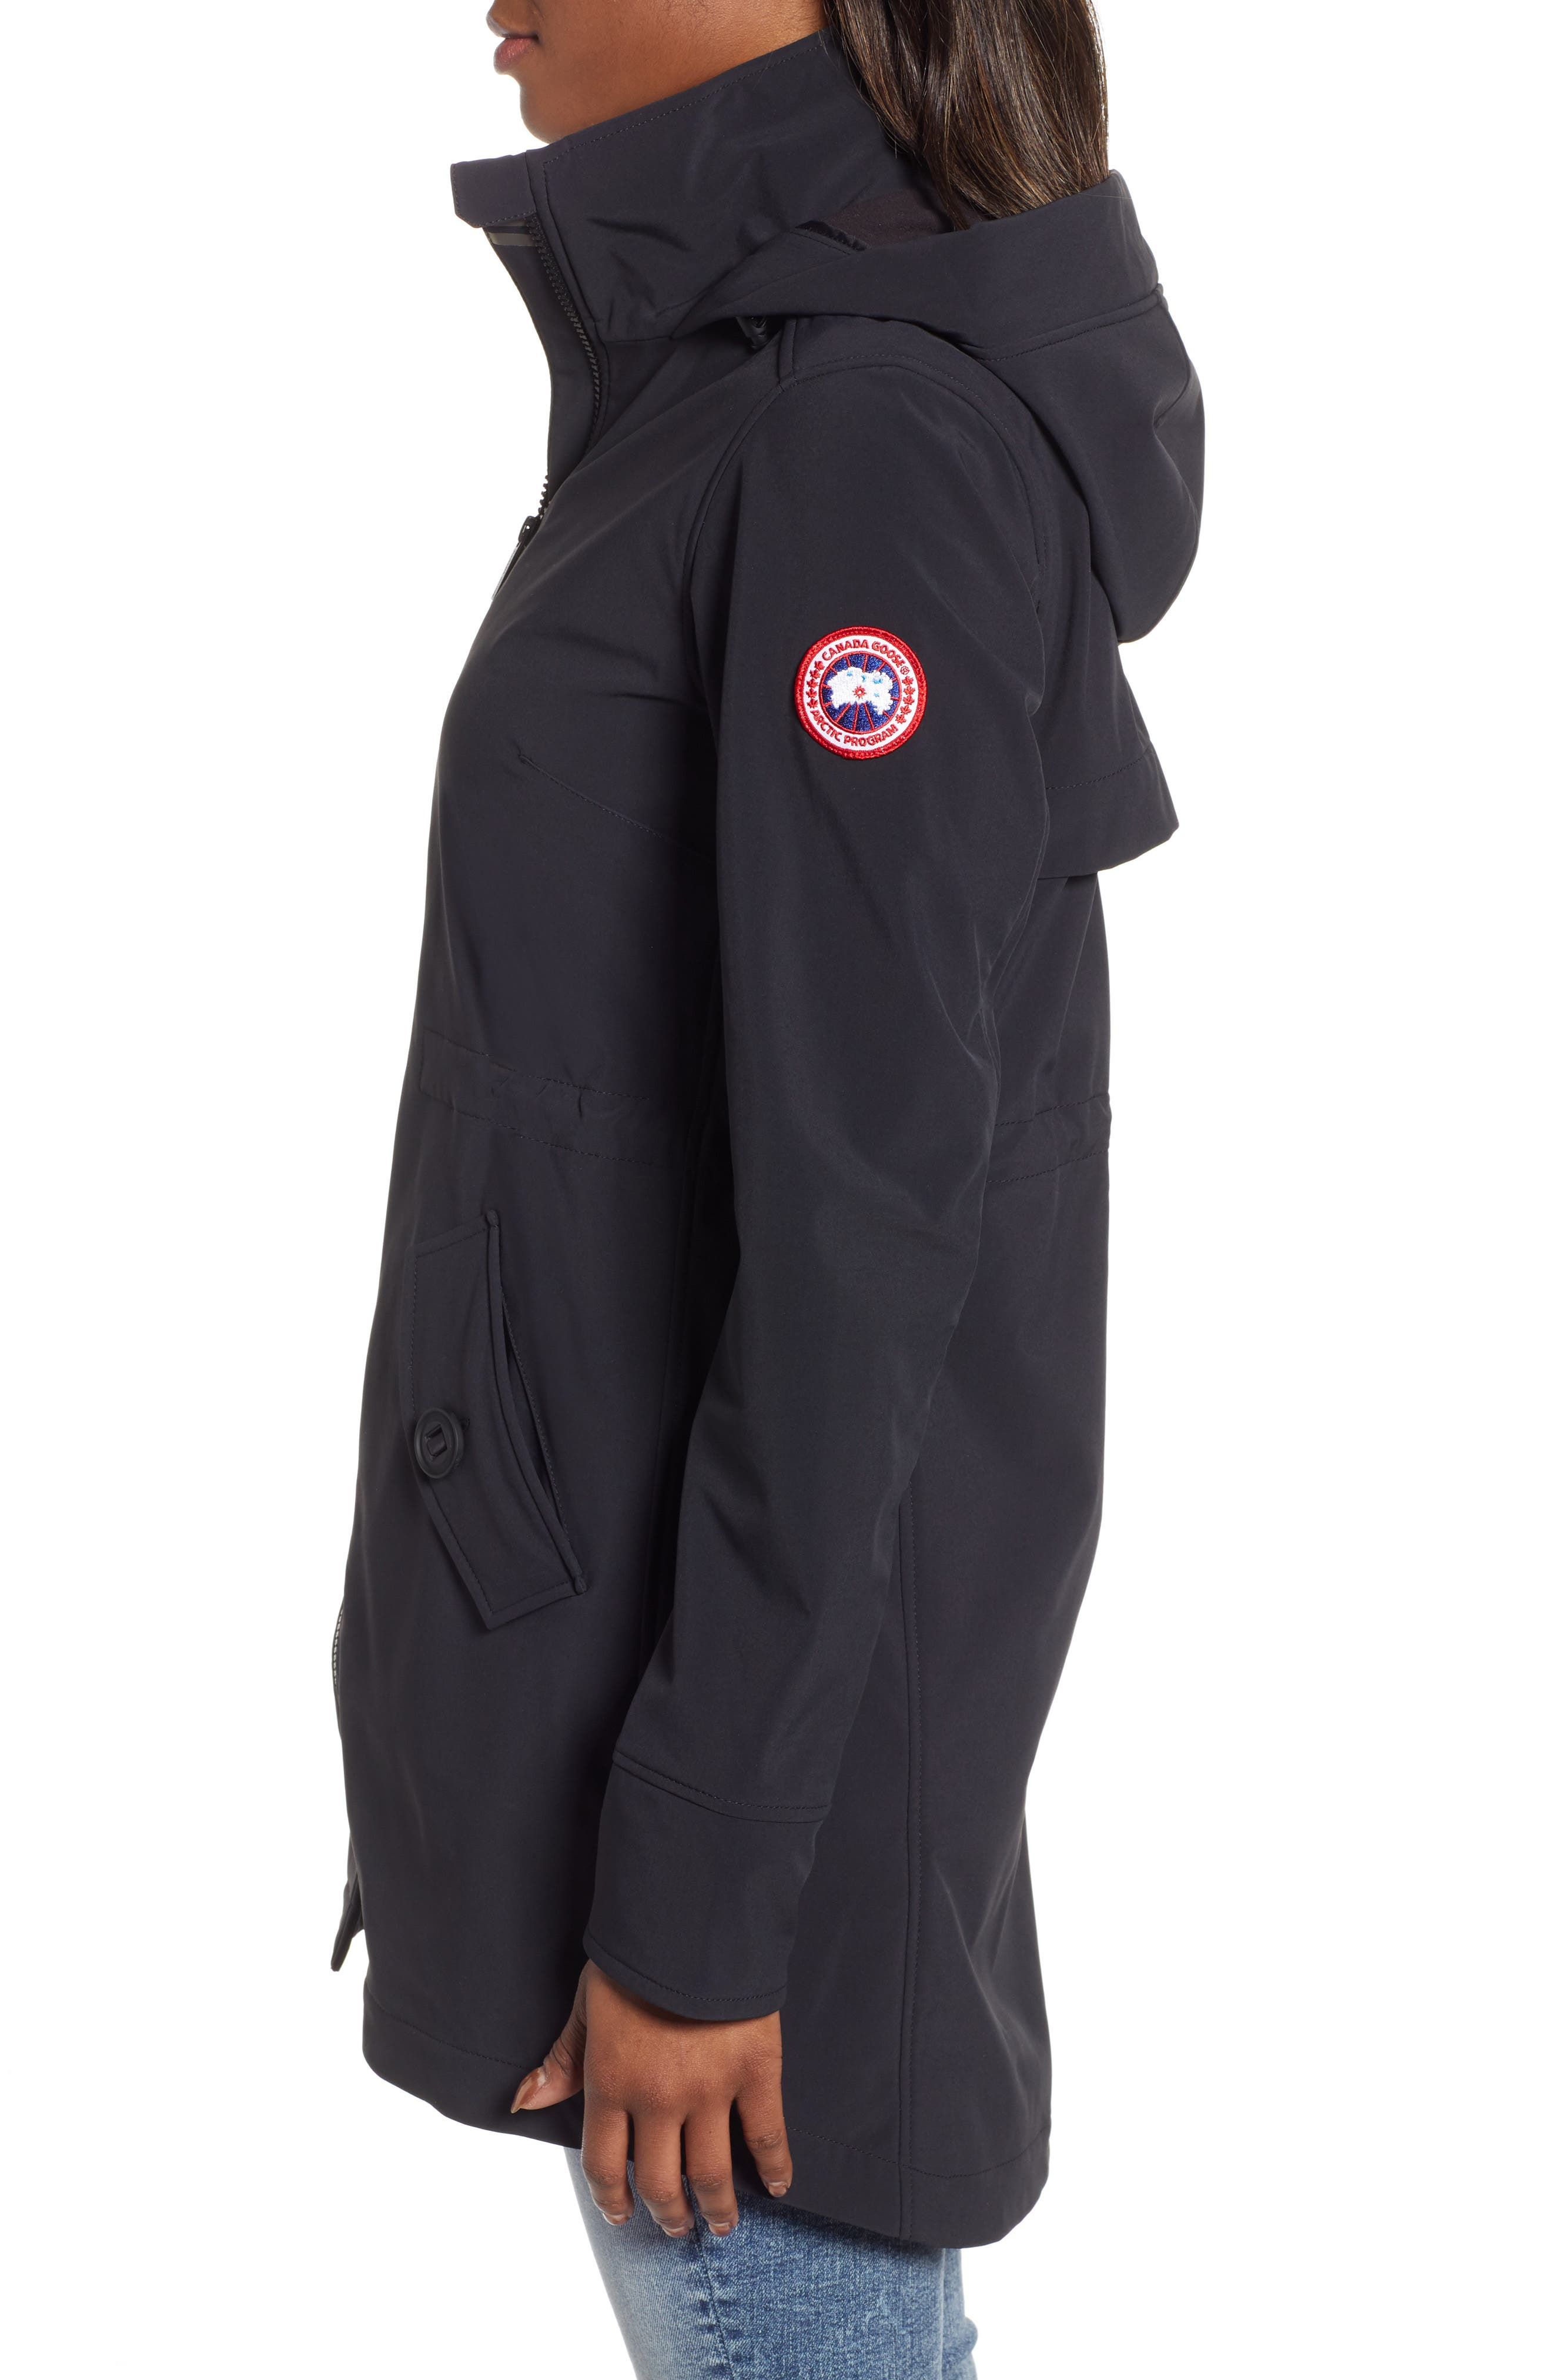 CANADA GOOSE, Avery Water Resistant Hooded Jacket, Alternate thumbnail 4, color, BLACK